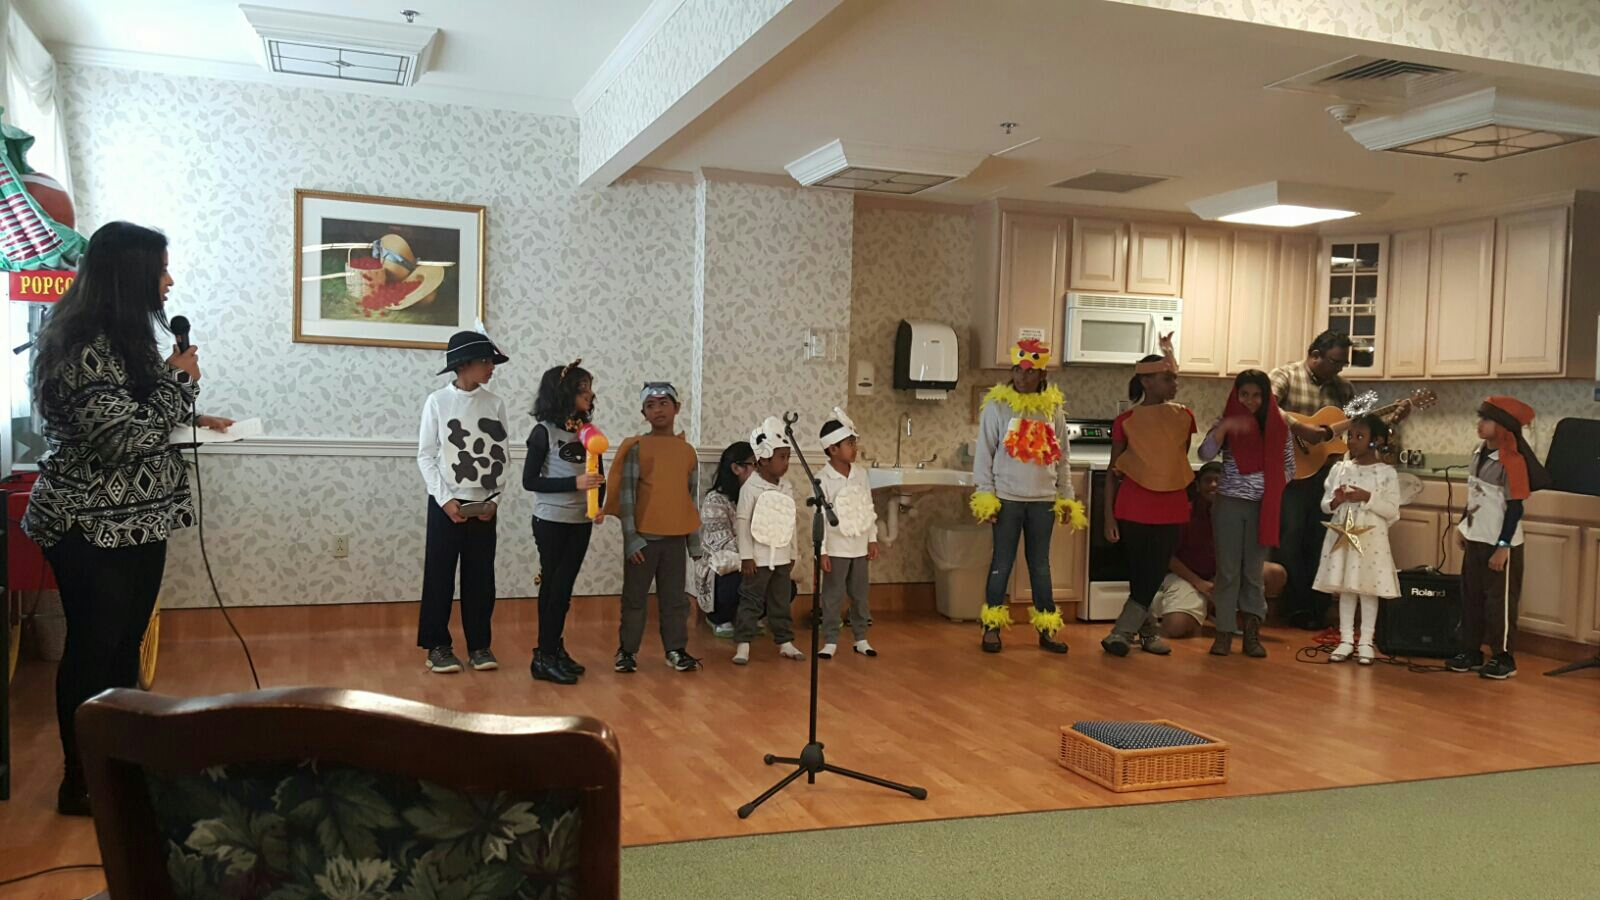 Outreach - Skit by HICF chuildren - Who stole the hay?